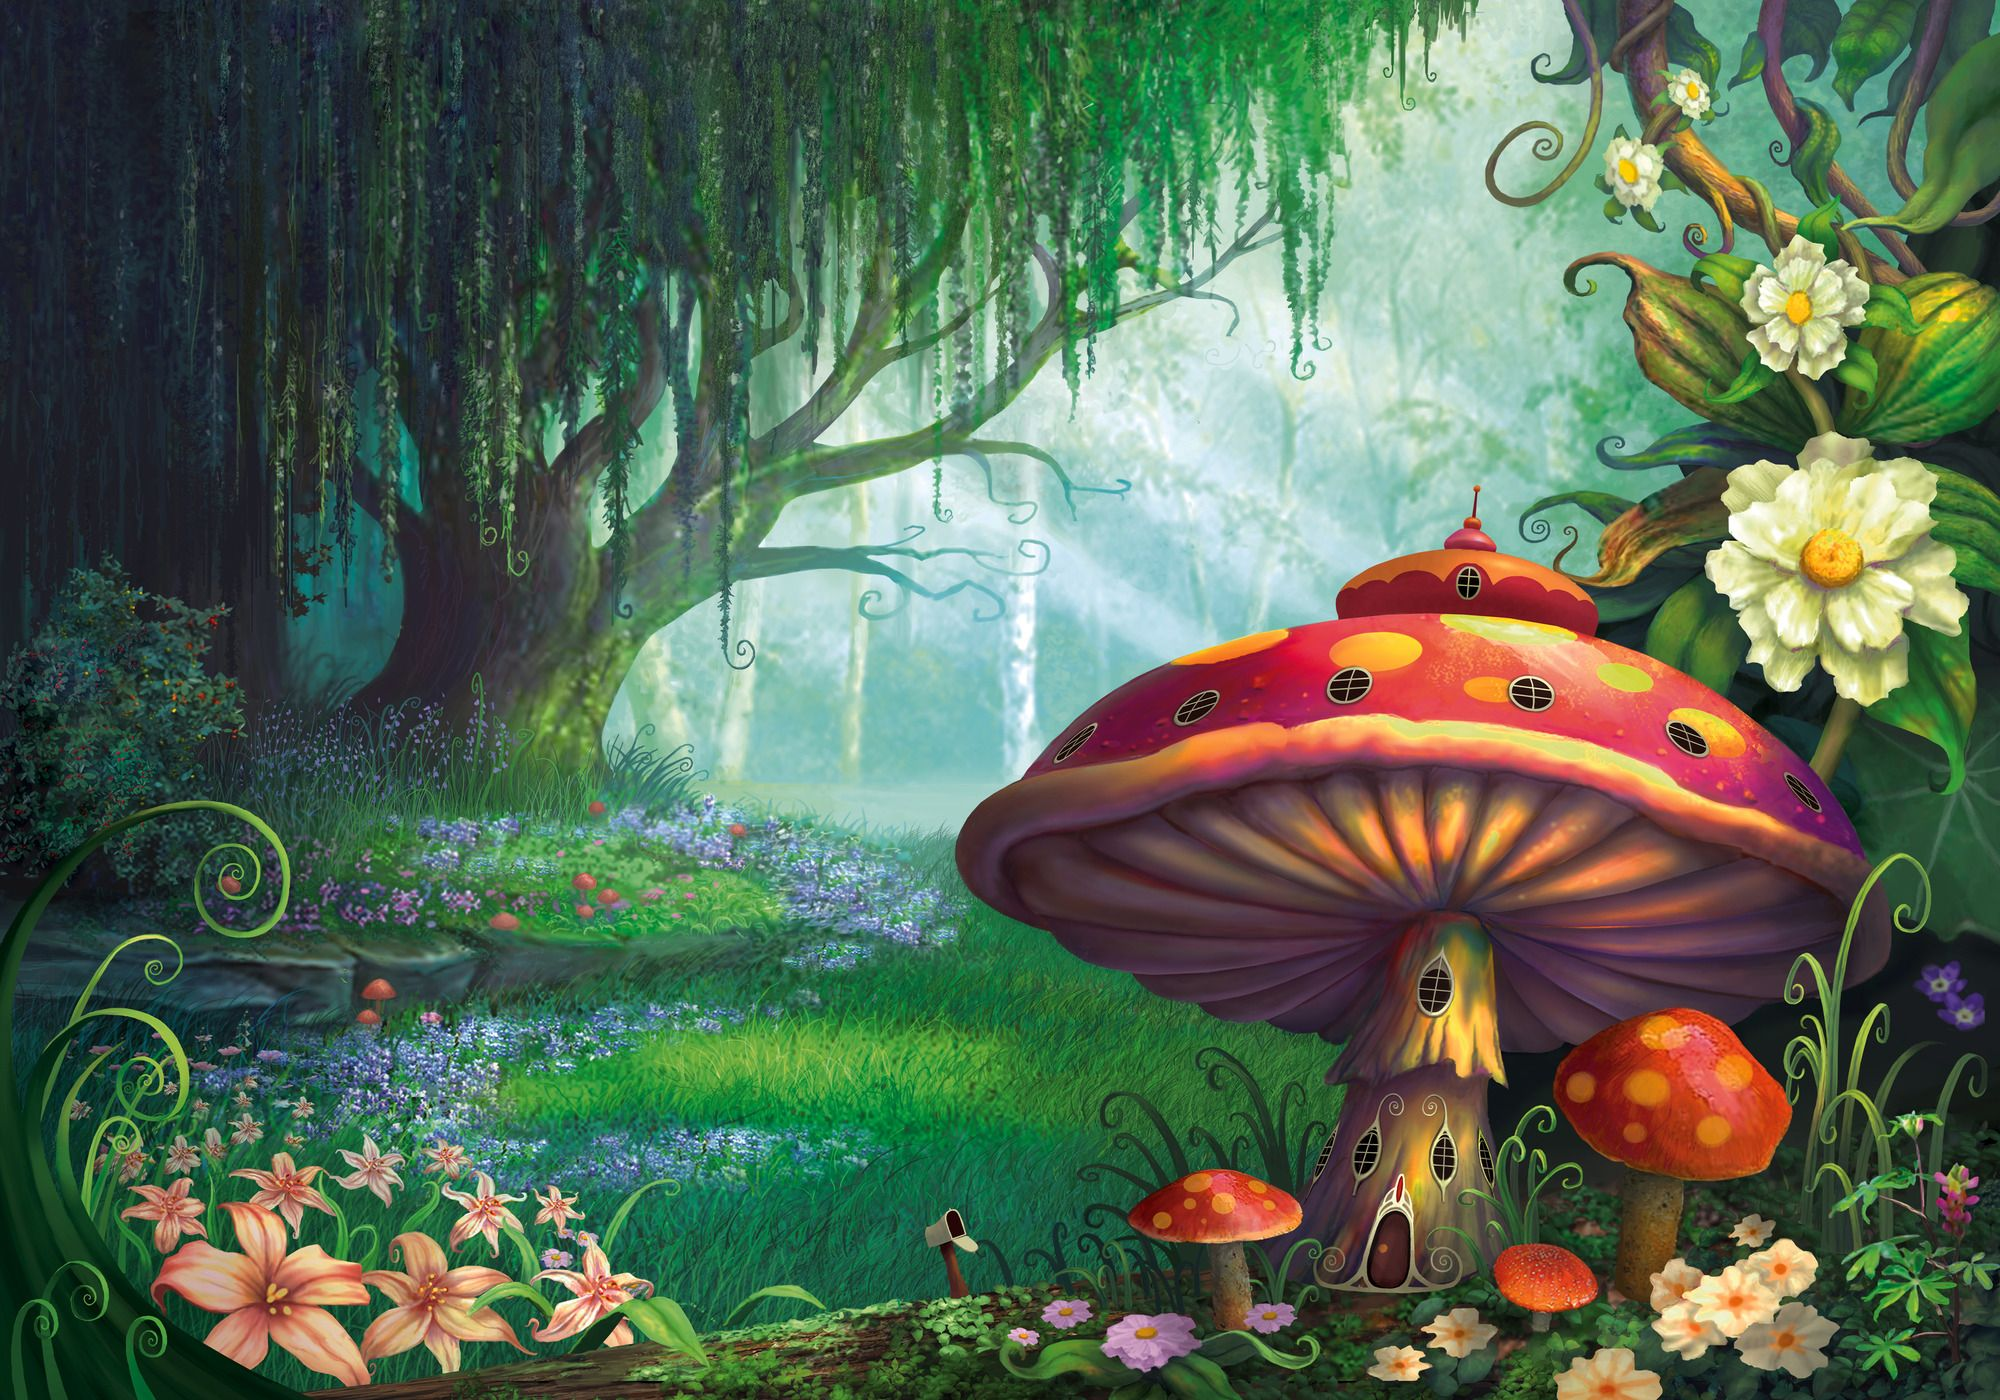 Enchanted forest clipart 4 » Clipart Station.